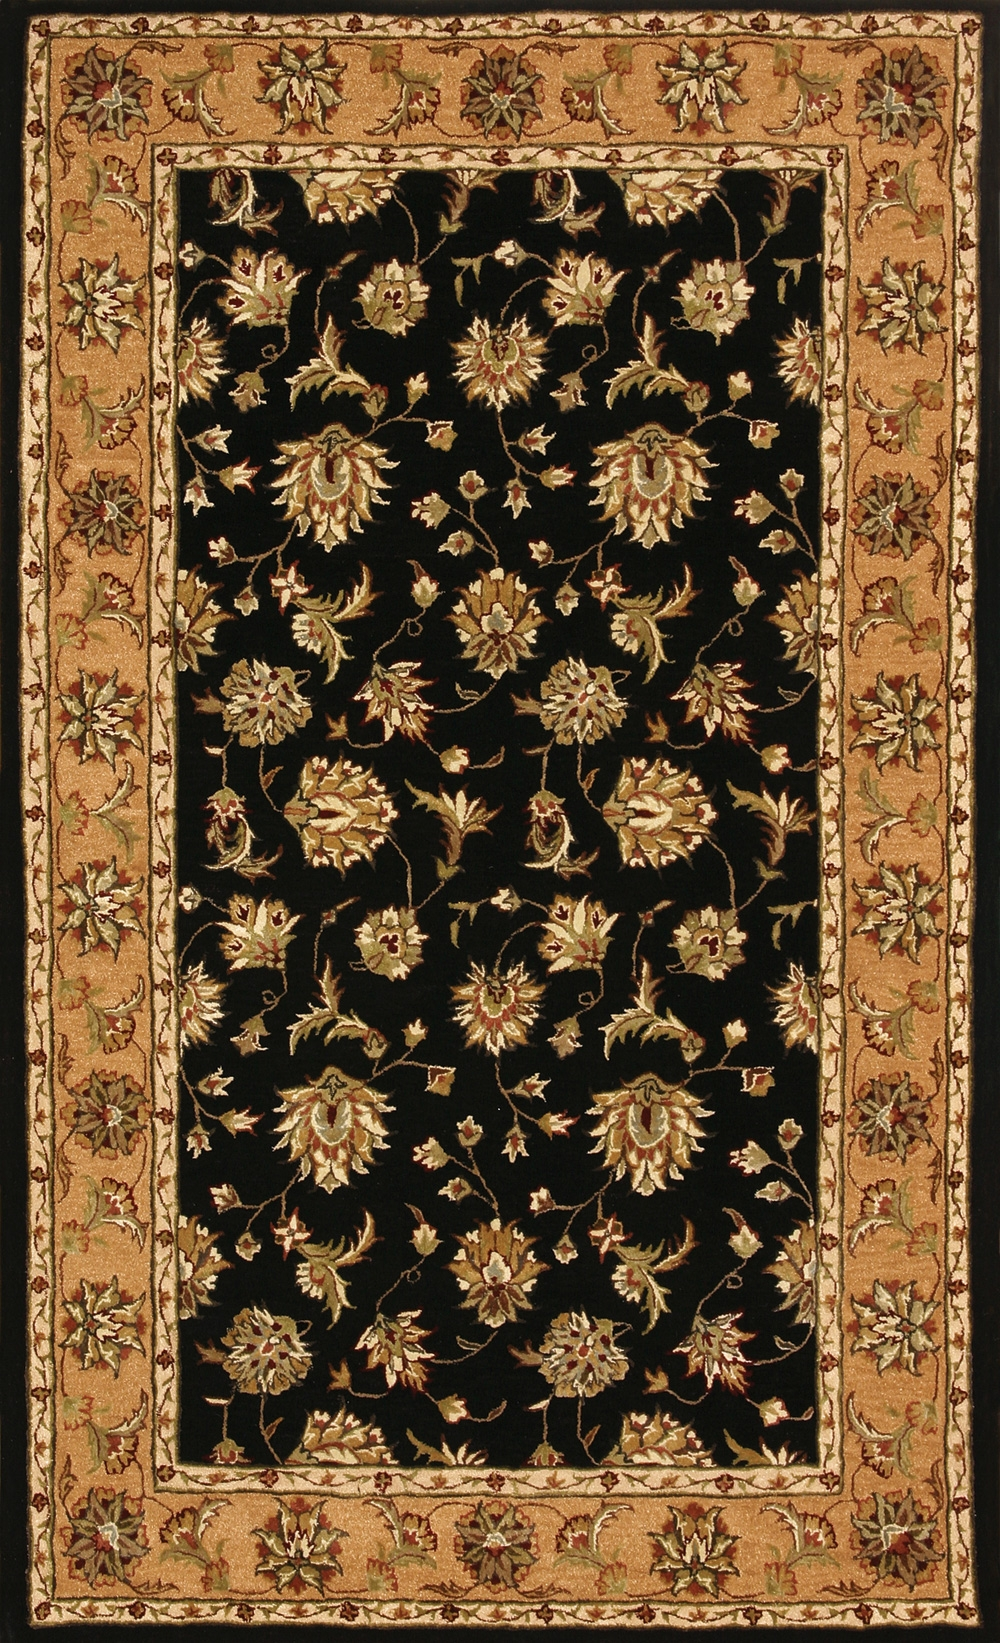 Black Camel 70231 092 Jewel Rug By Dynamic